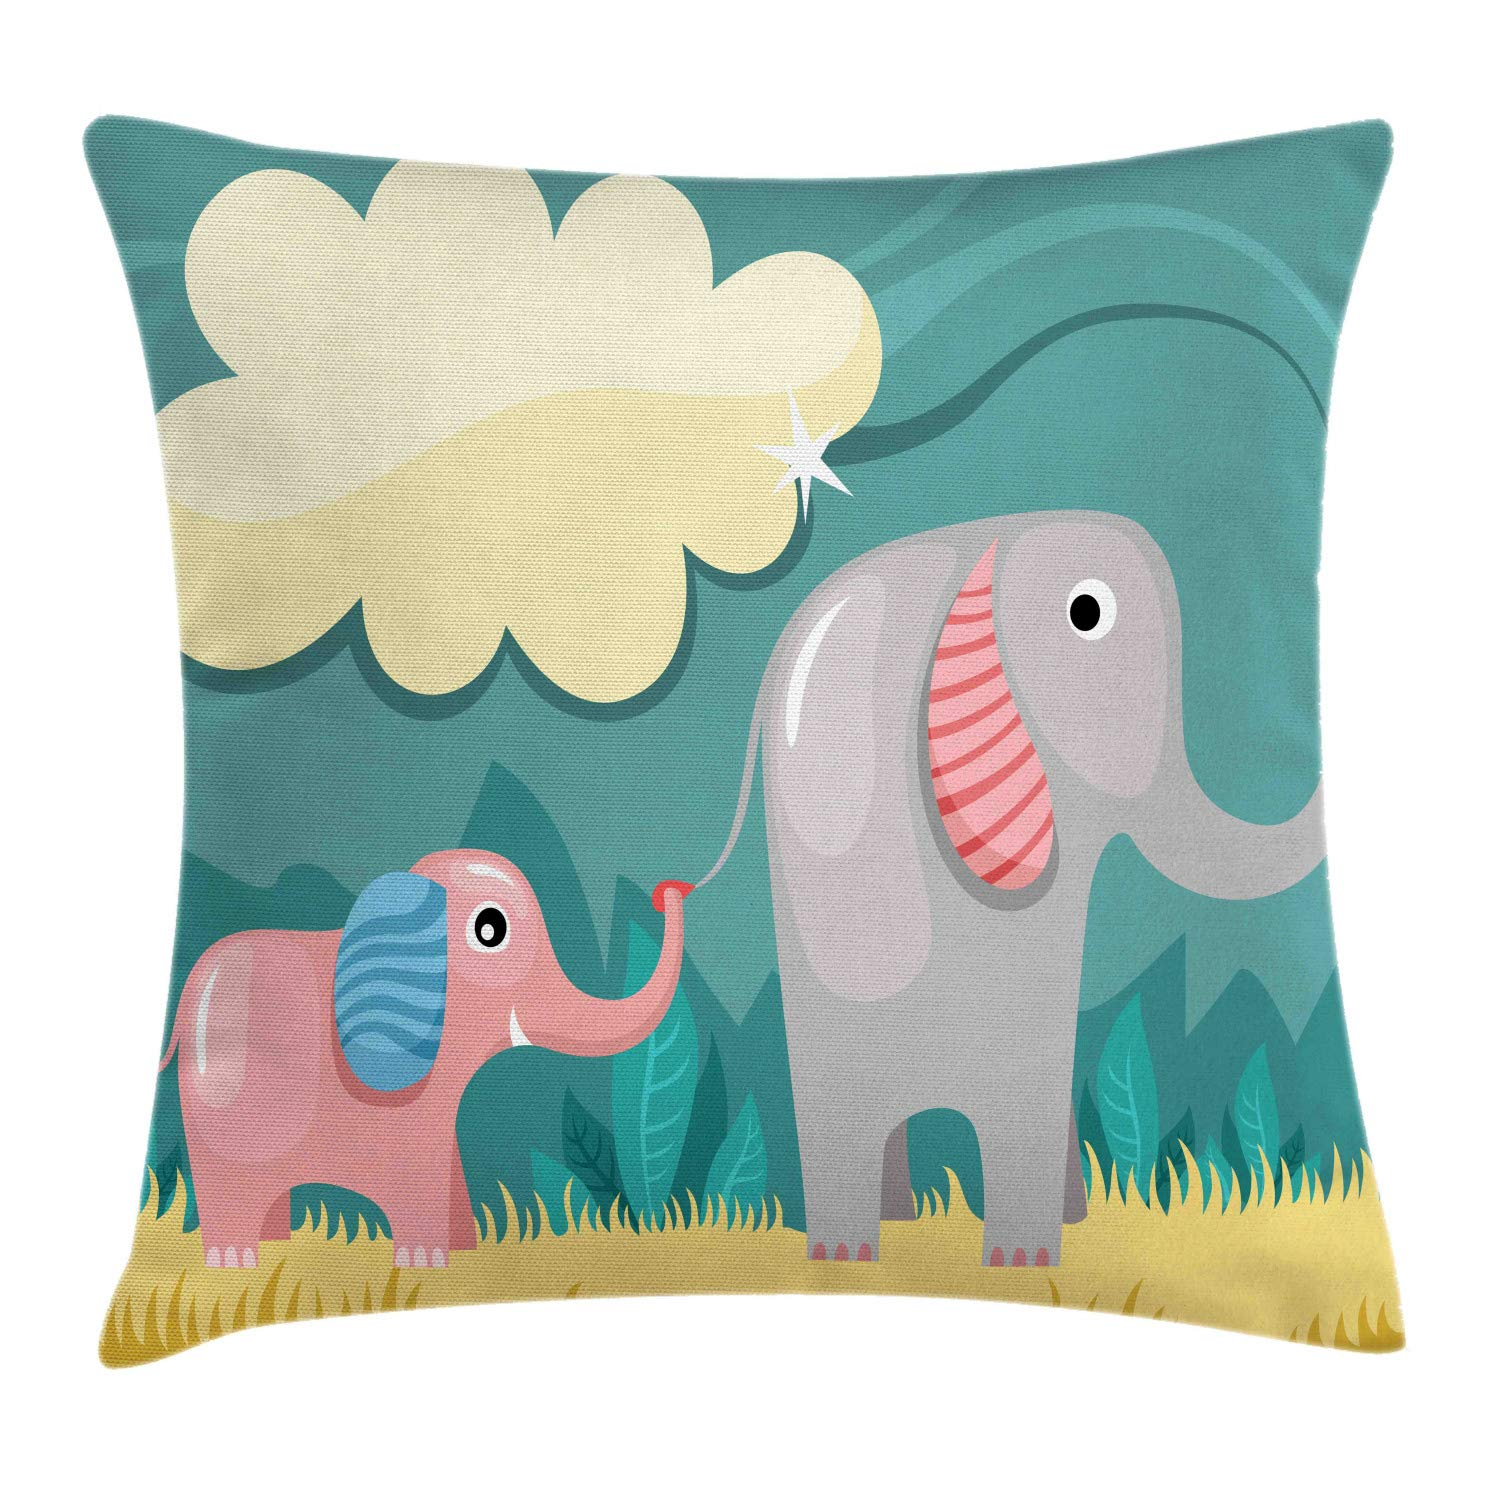 Ambesonne Elephant Throw Pillow Cushion Cover, Nursery Style Graphic of Animal Baby and Mom Pastel Cloud, Decorative Square Accent Pillow Case, 28'' X 28'', Cadet Blue Multicolor